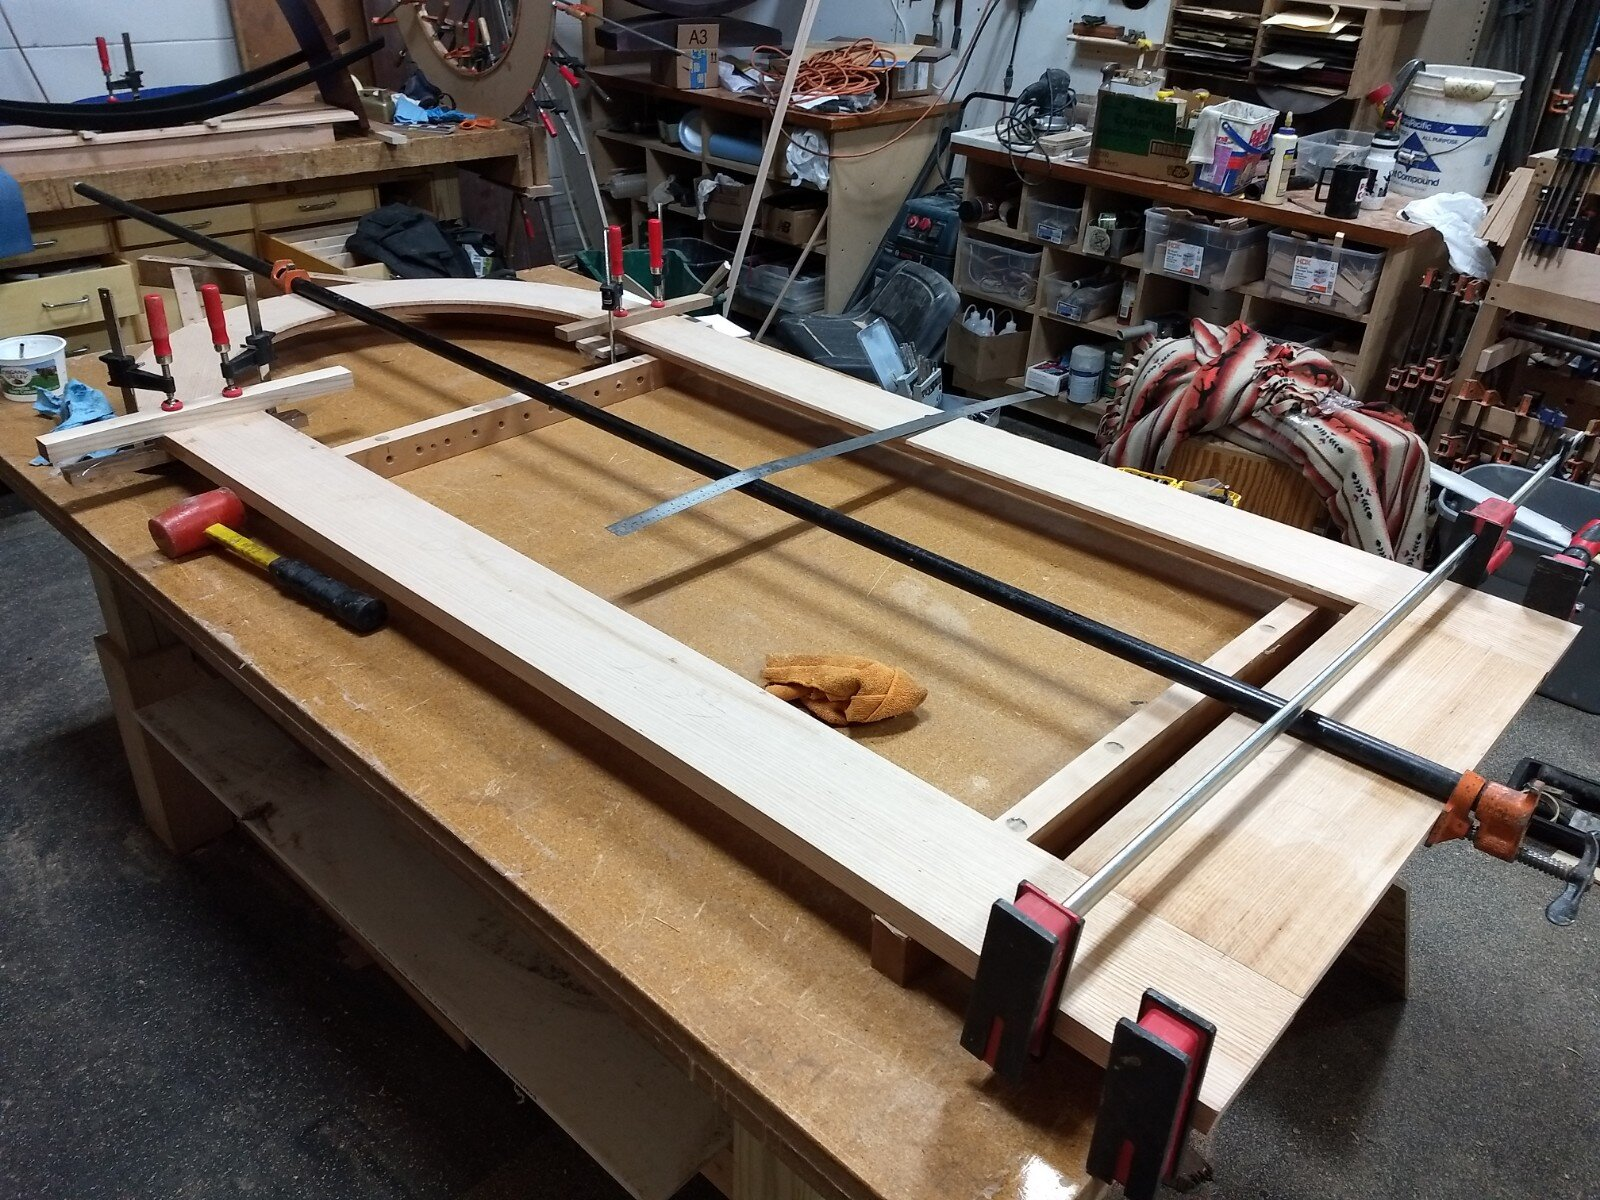 Glued up table